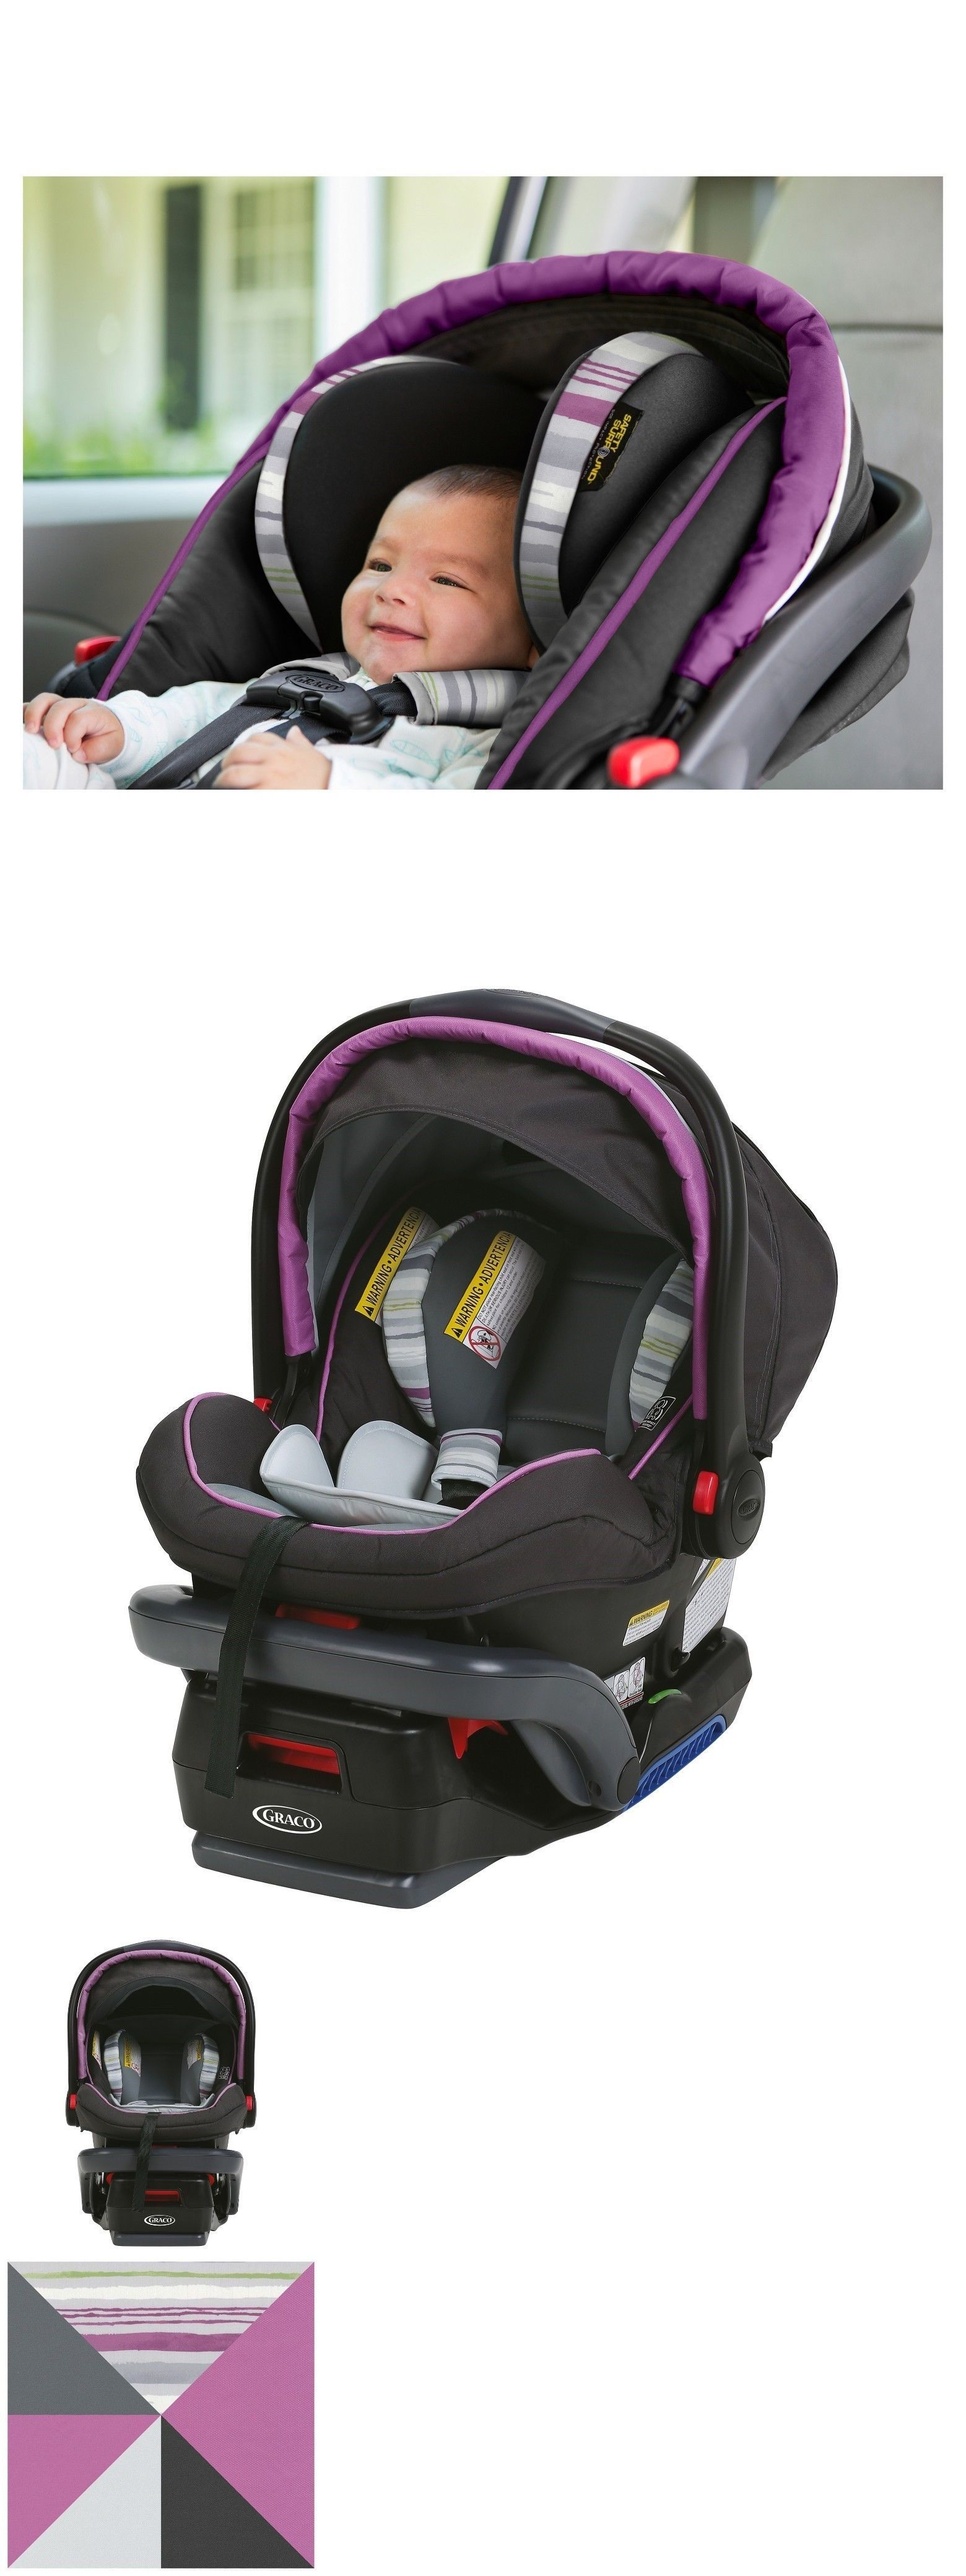 Car Safety Seats 66692 New Graco Snugride Snuglock 35 Elite Infant Seat ColorLansing BUY IT NOW ONLY 15999 On EBay